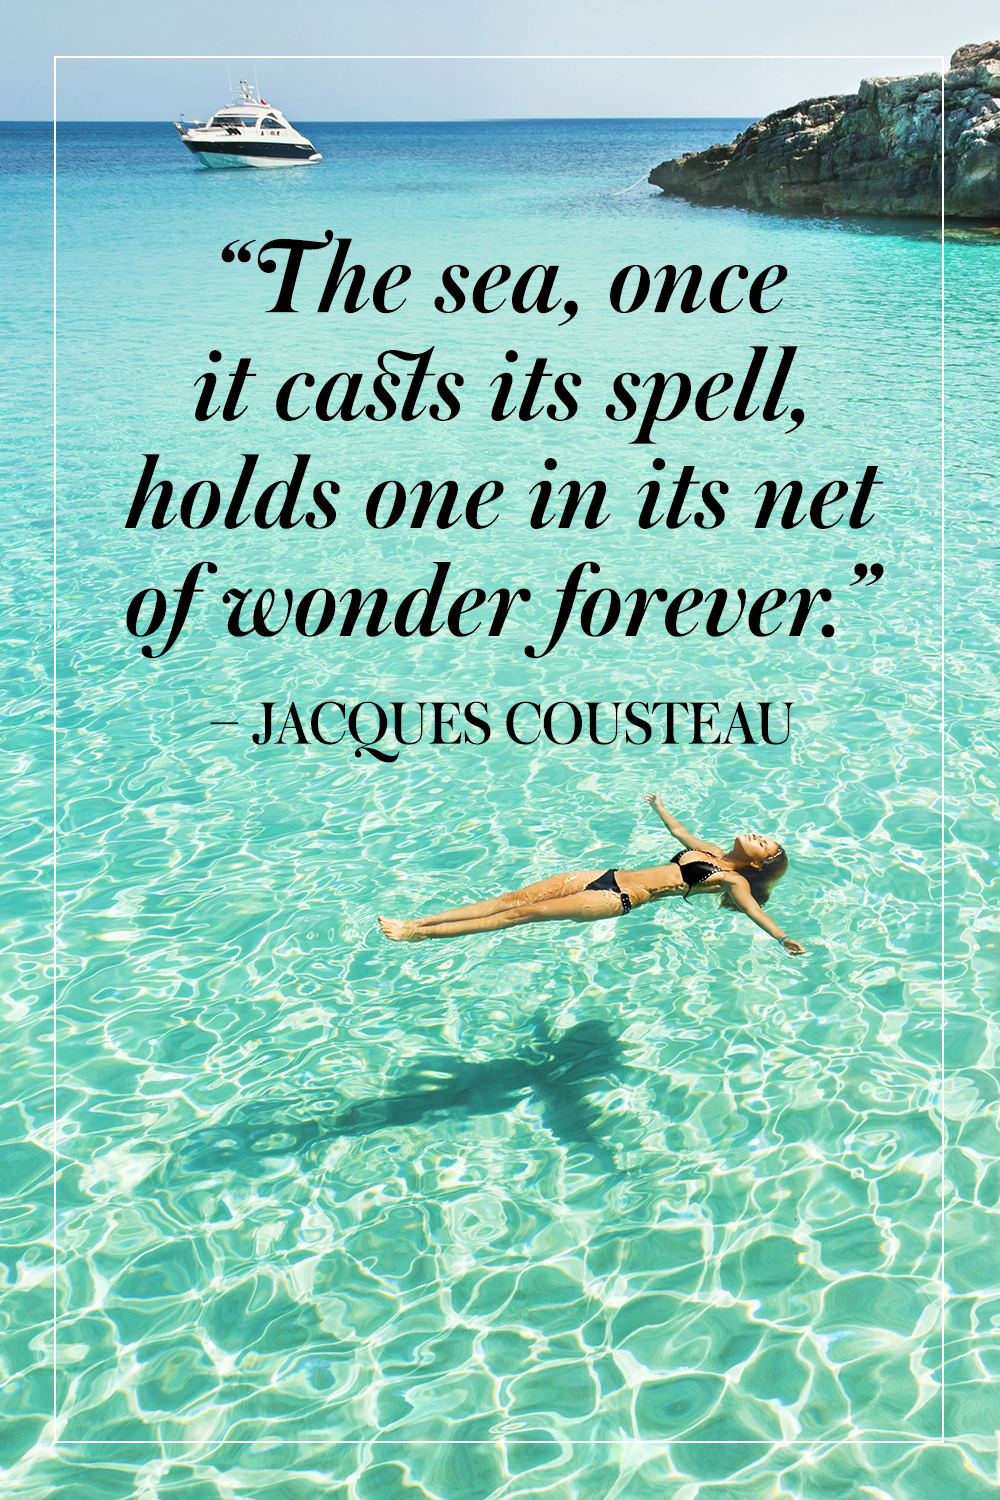 Best quotes about the ocean quotesgram for Great short vacation ideas